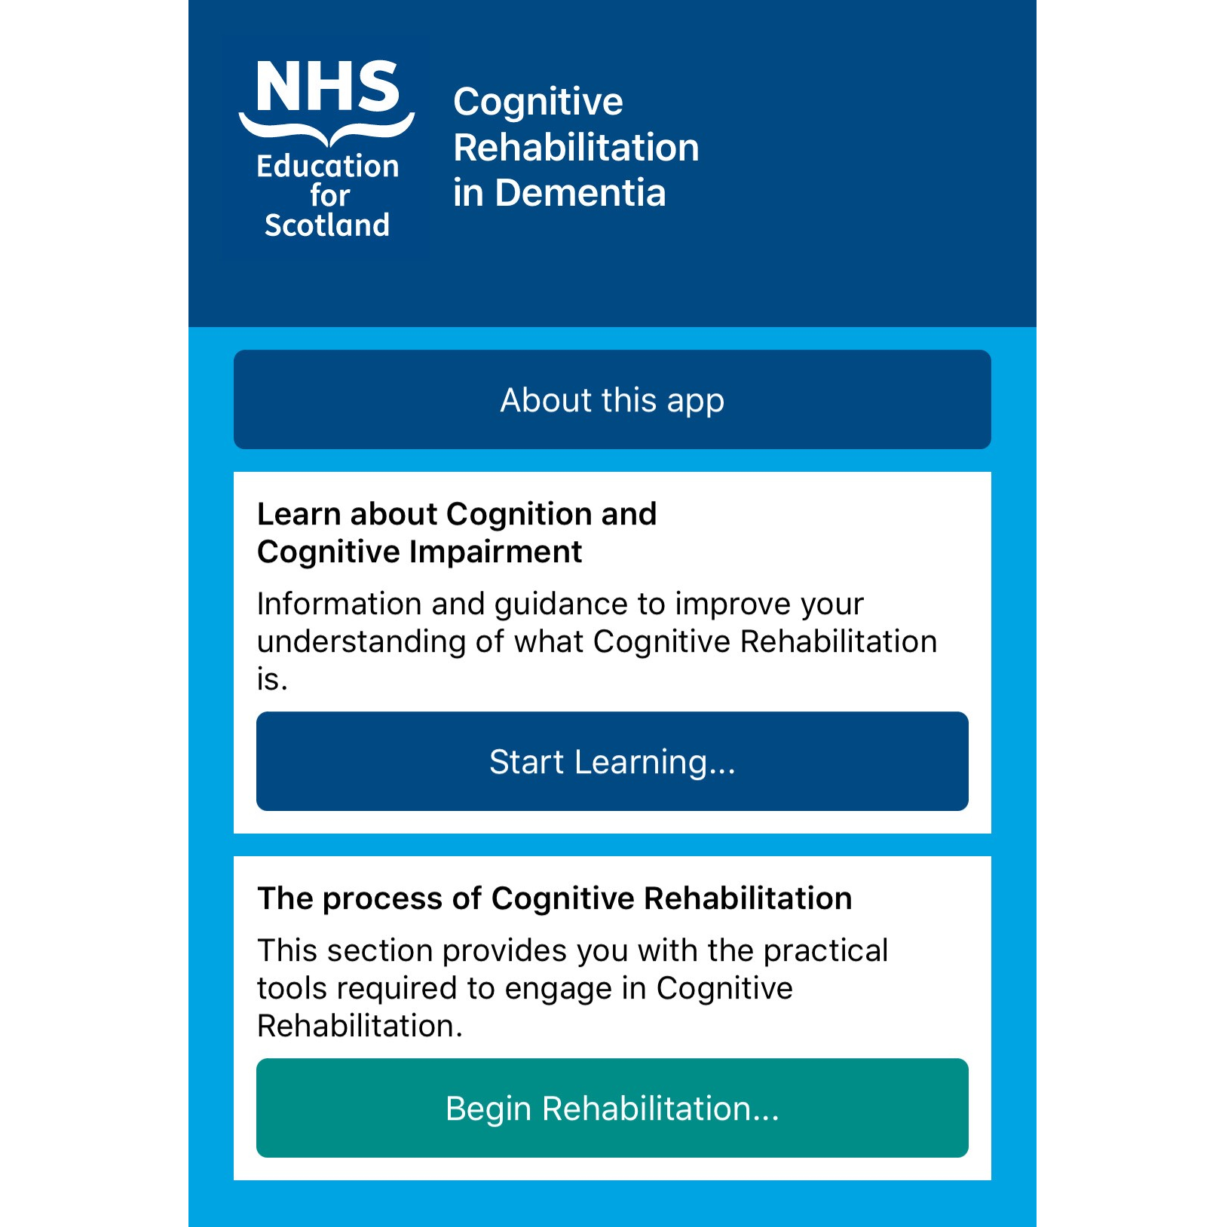 NHS Education for Scotland's Cognitive Rehabilitation in Dementia app home screen